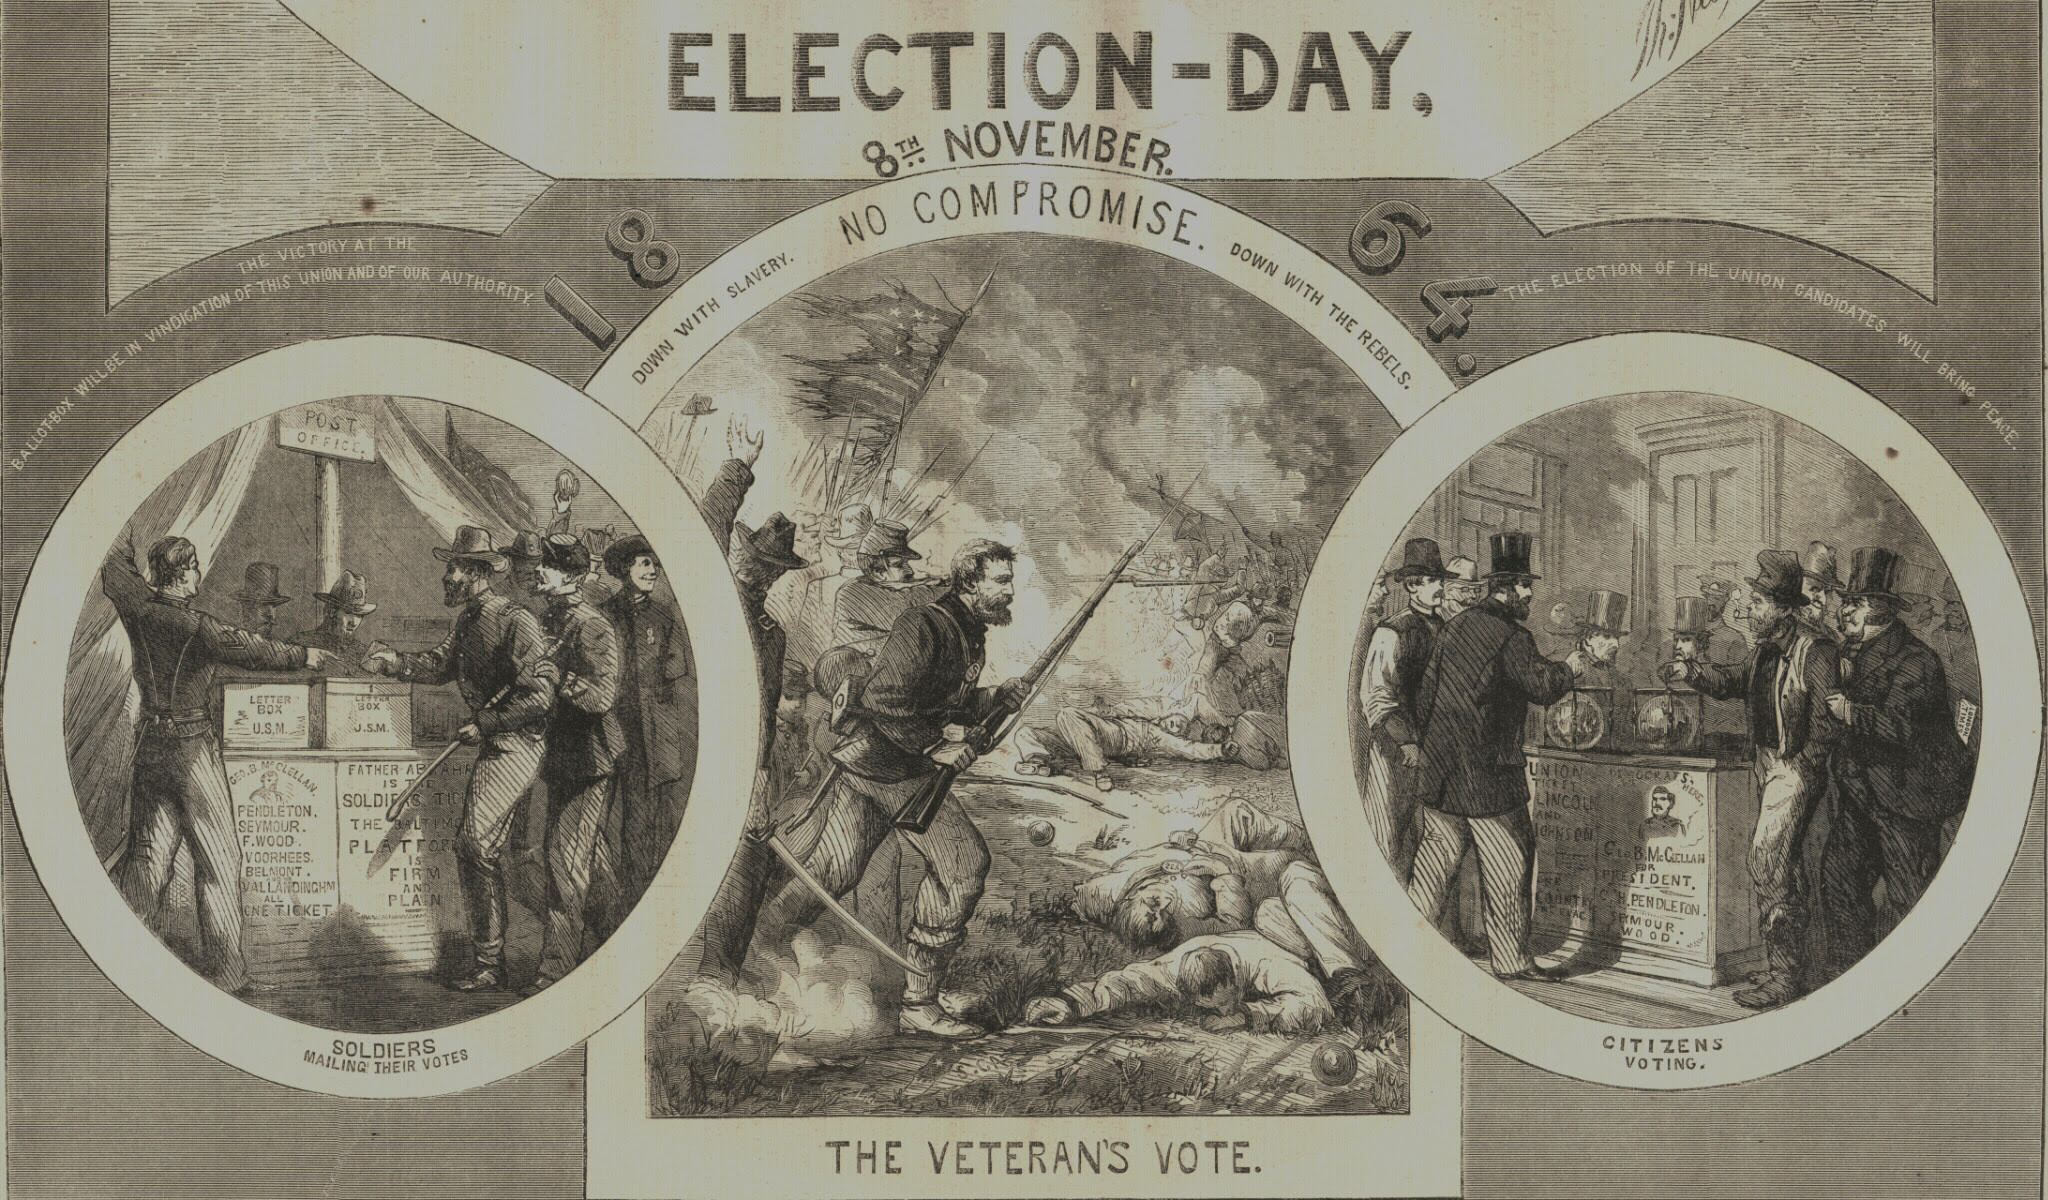 http://www.lincolncollection.org/media/19826/soldiers_voting.jpg